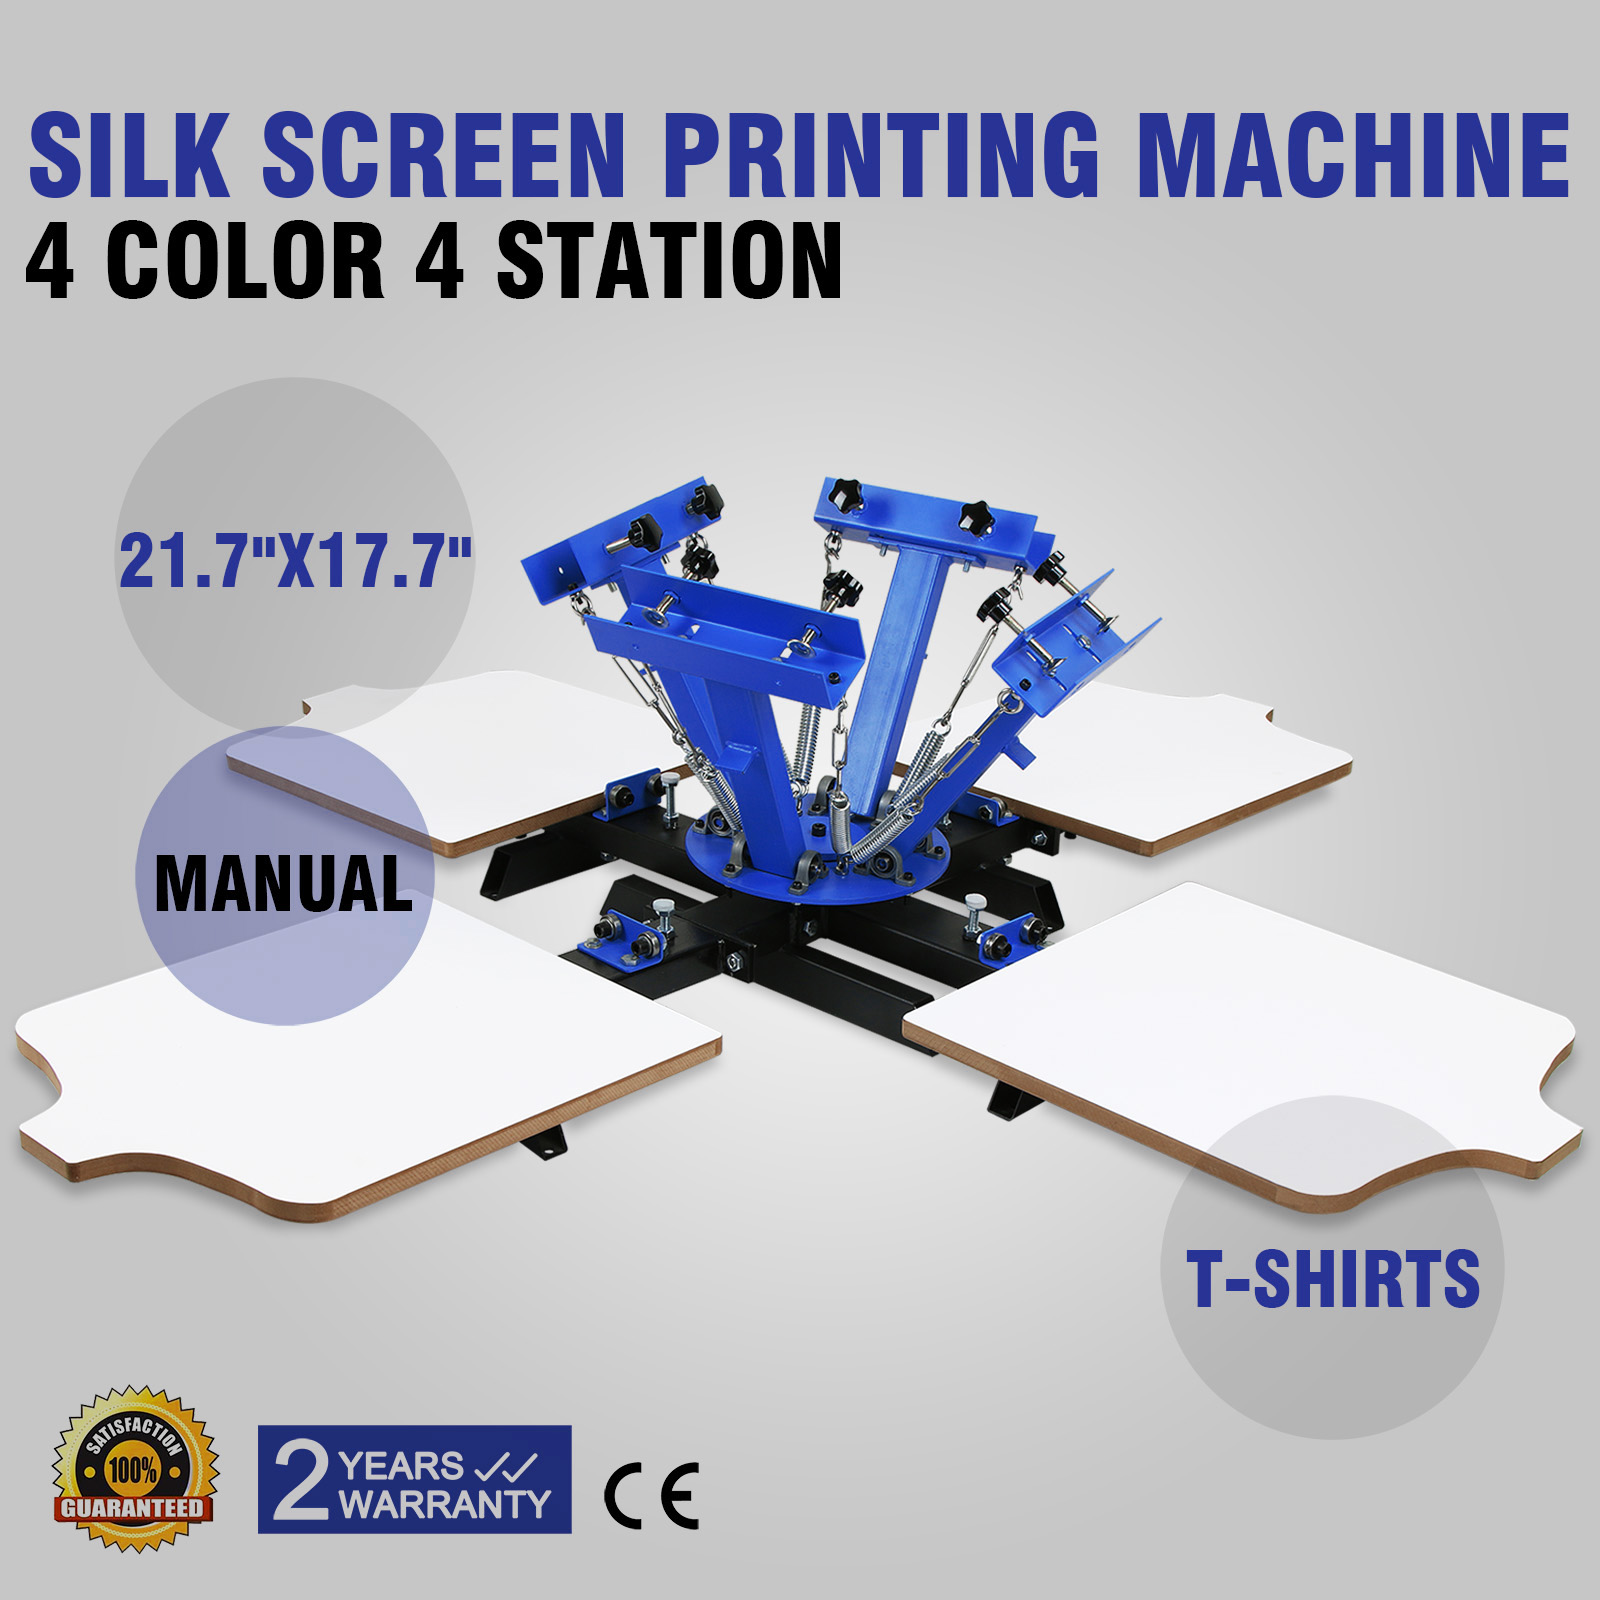 966e5032 Details about 4 Color 4 Station Silk Screen Printing Kit Press Equipment  Pressing DIY Machine